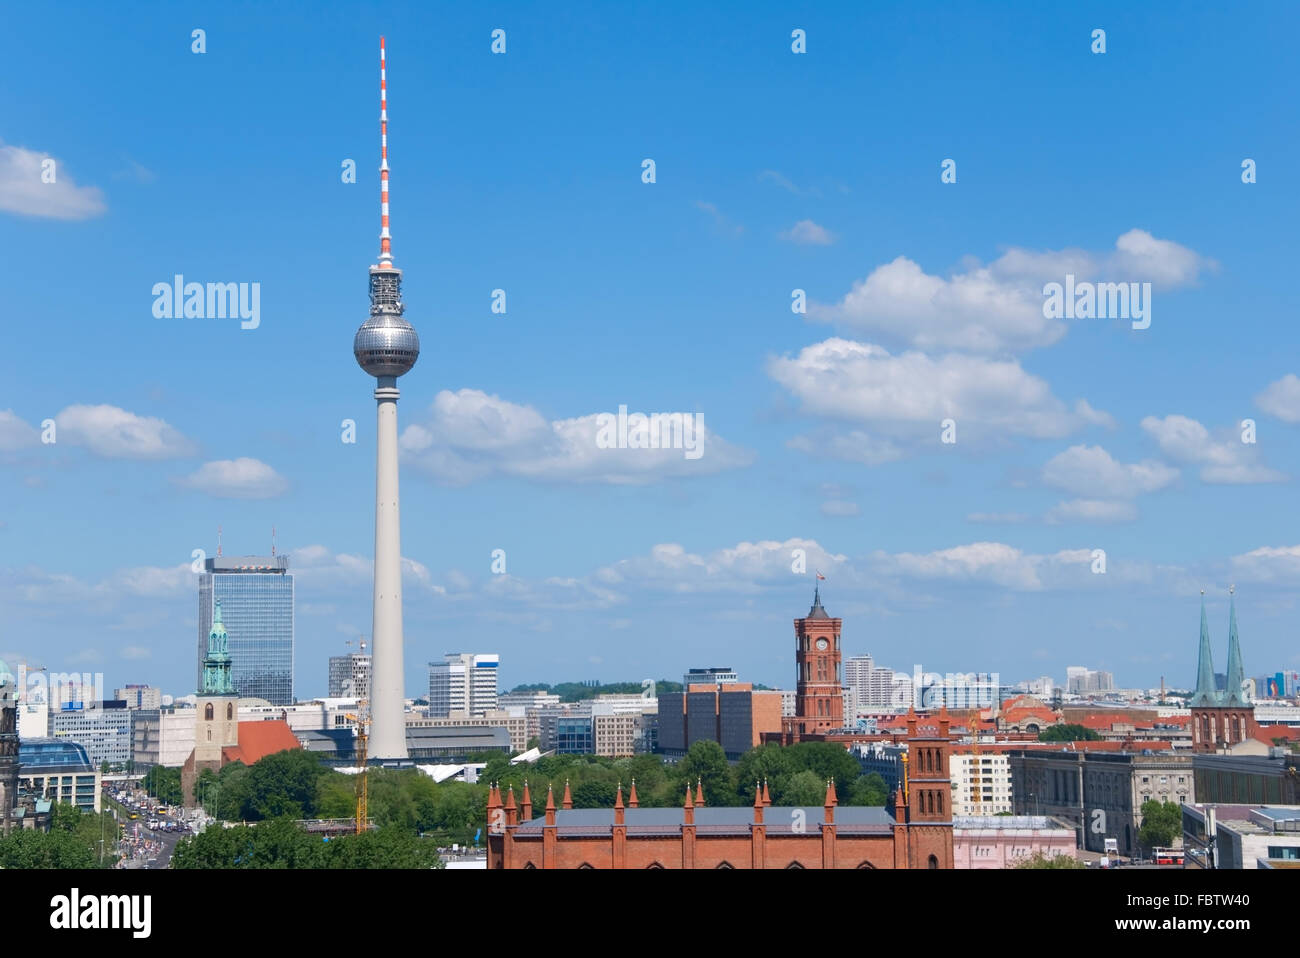 berlin skyline with rotes rathaus town hall - Stock Image